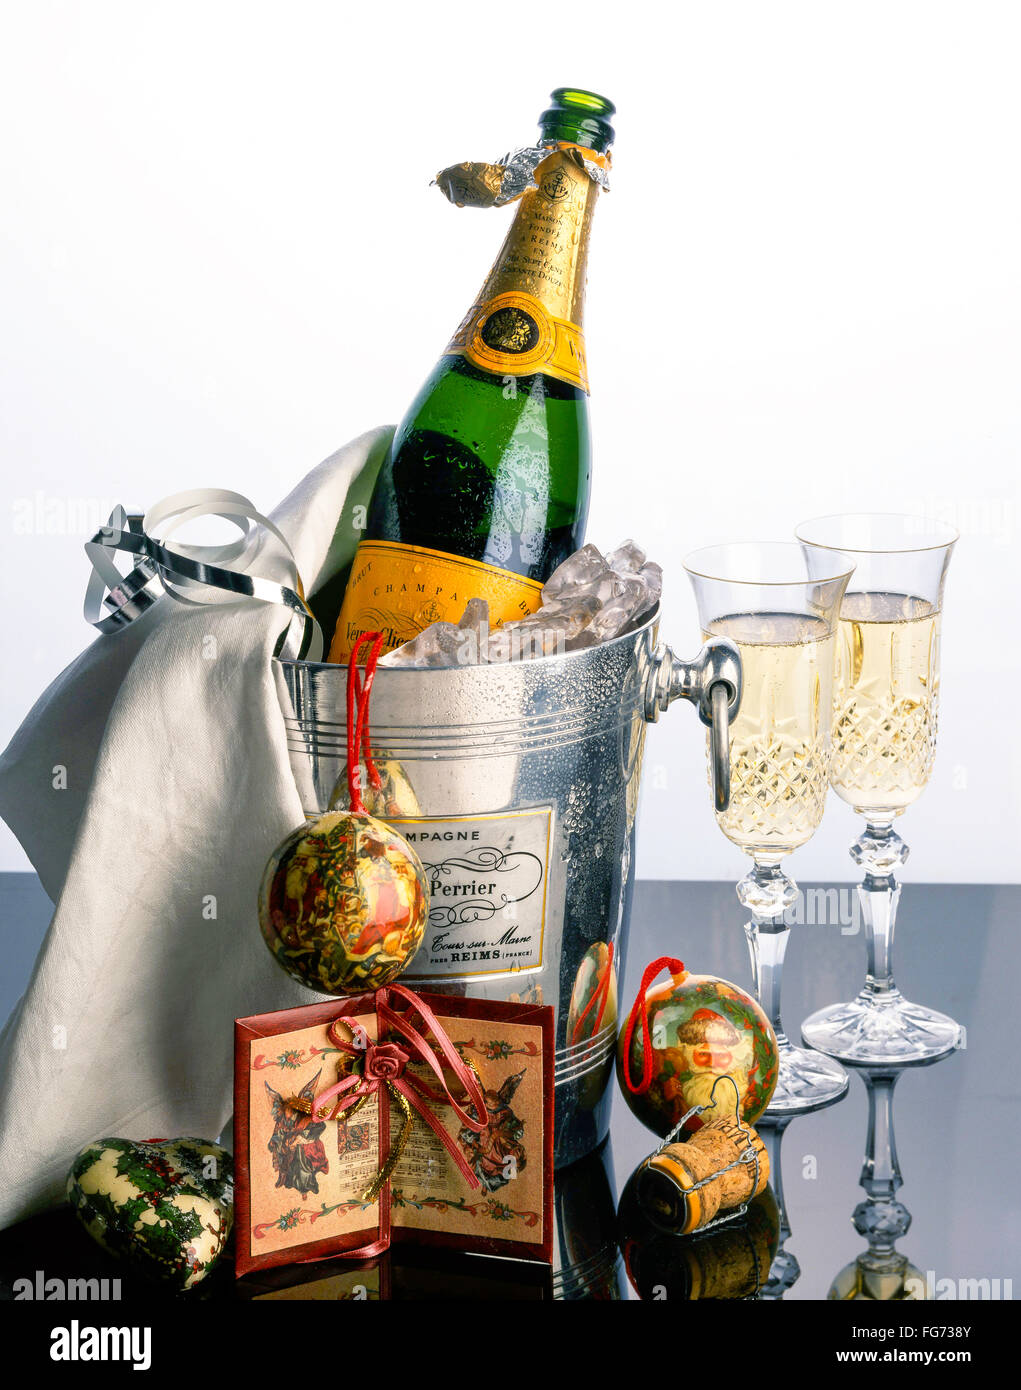 Veuve Clicquot champagne in ice-bucket with Christmas decorations and crystal glasses, London, England, United Kingdom - Stock Image